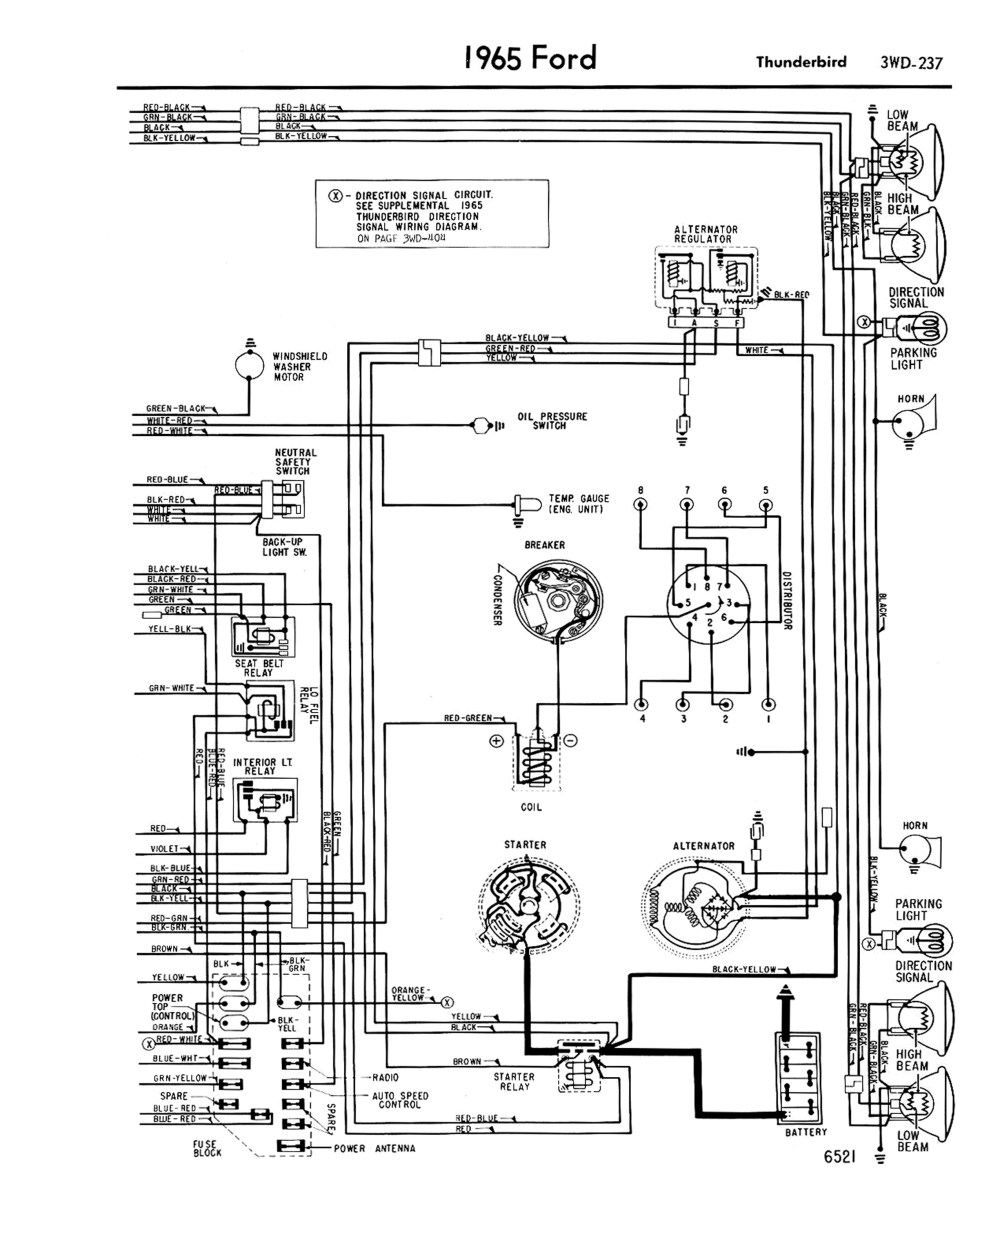 medium resolution of 1958 68 ford electrical schematics rh squarebirds org 1965 ford t bird convertible data plate